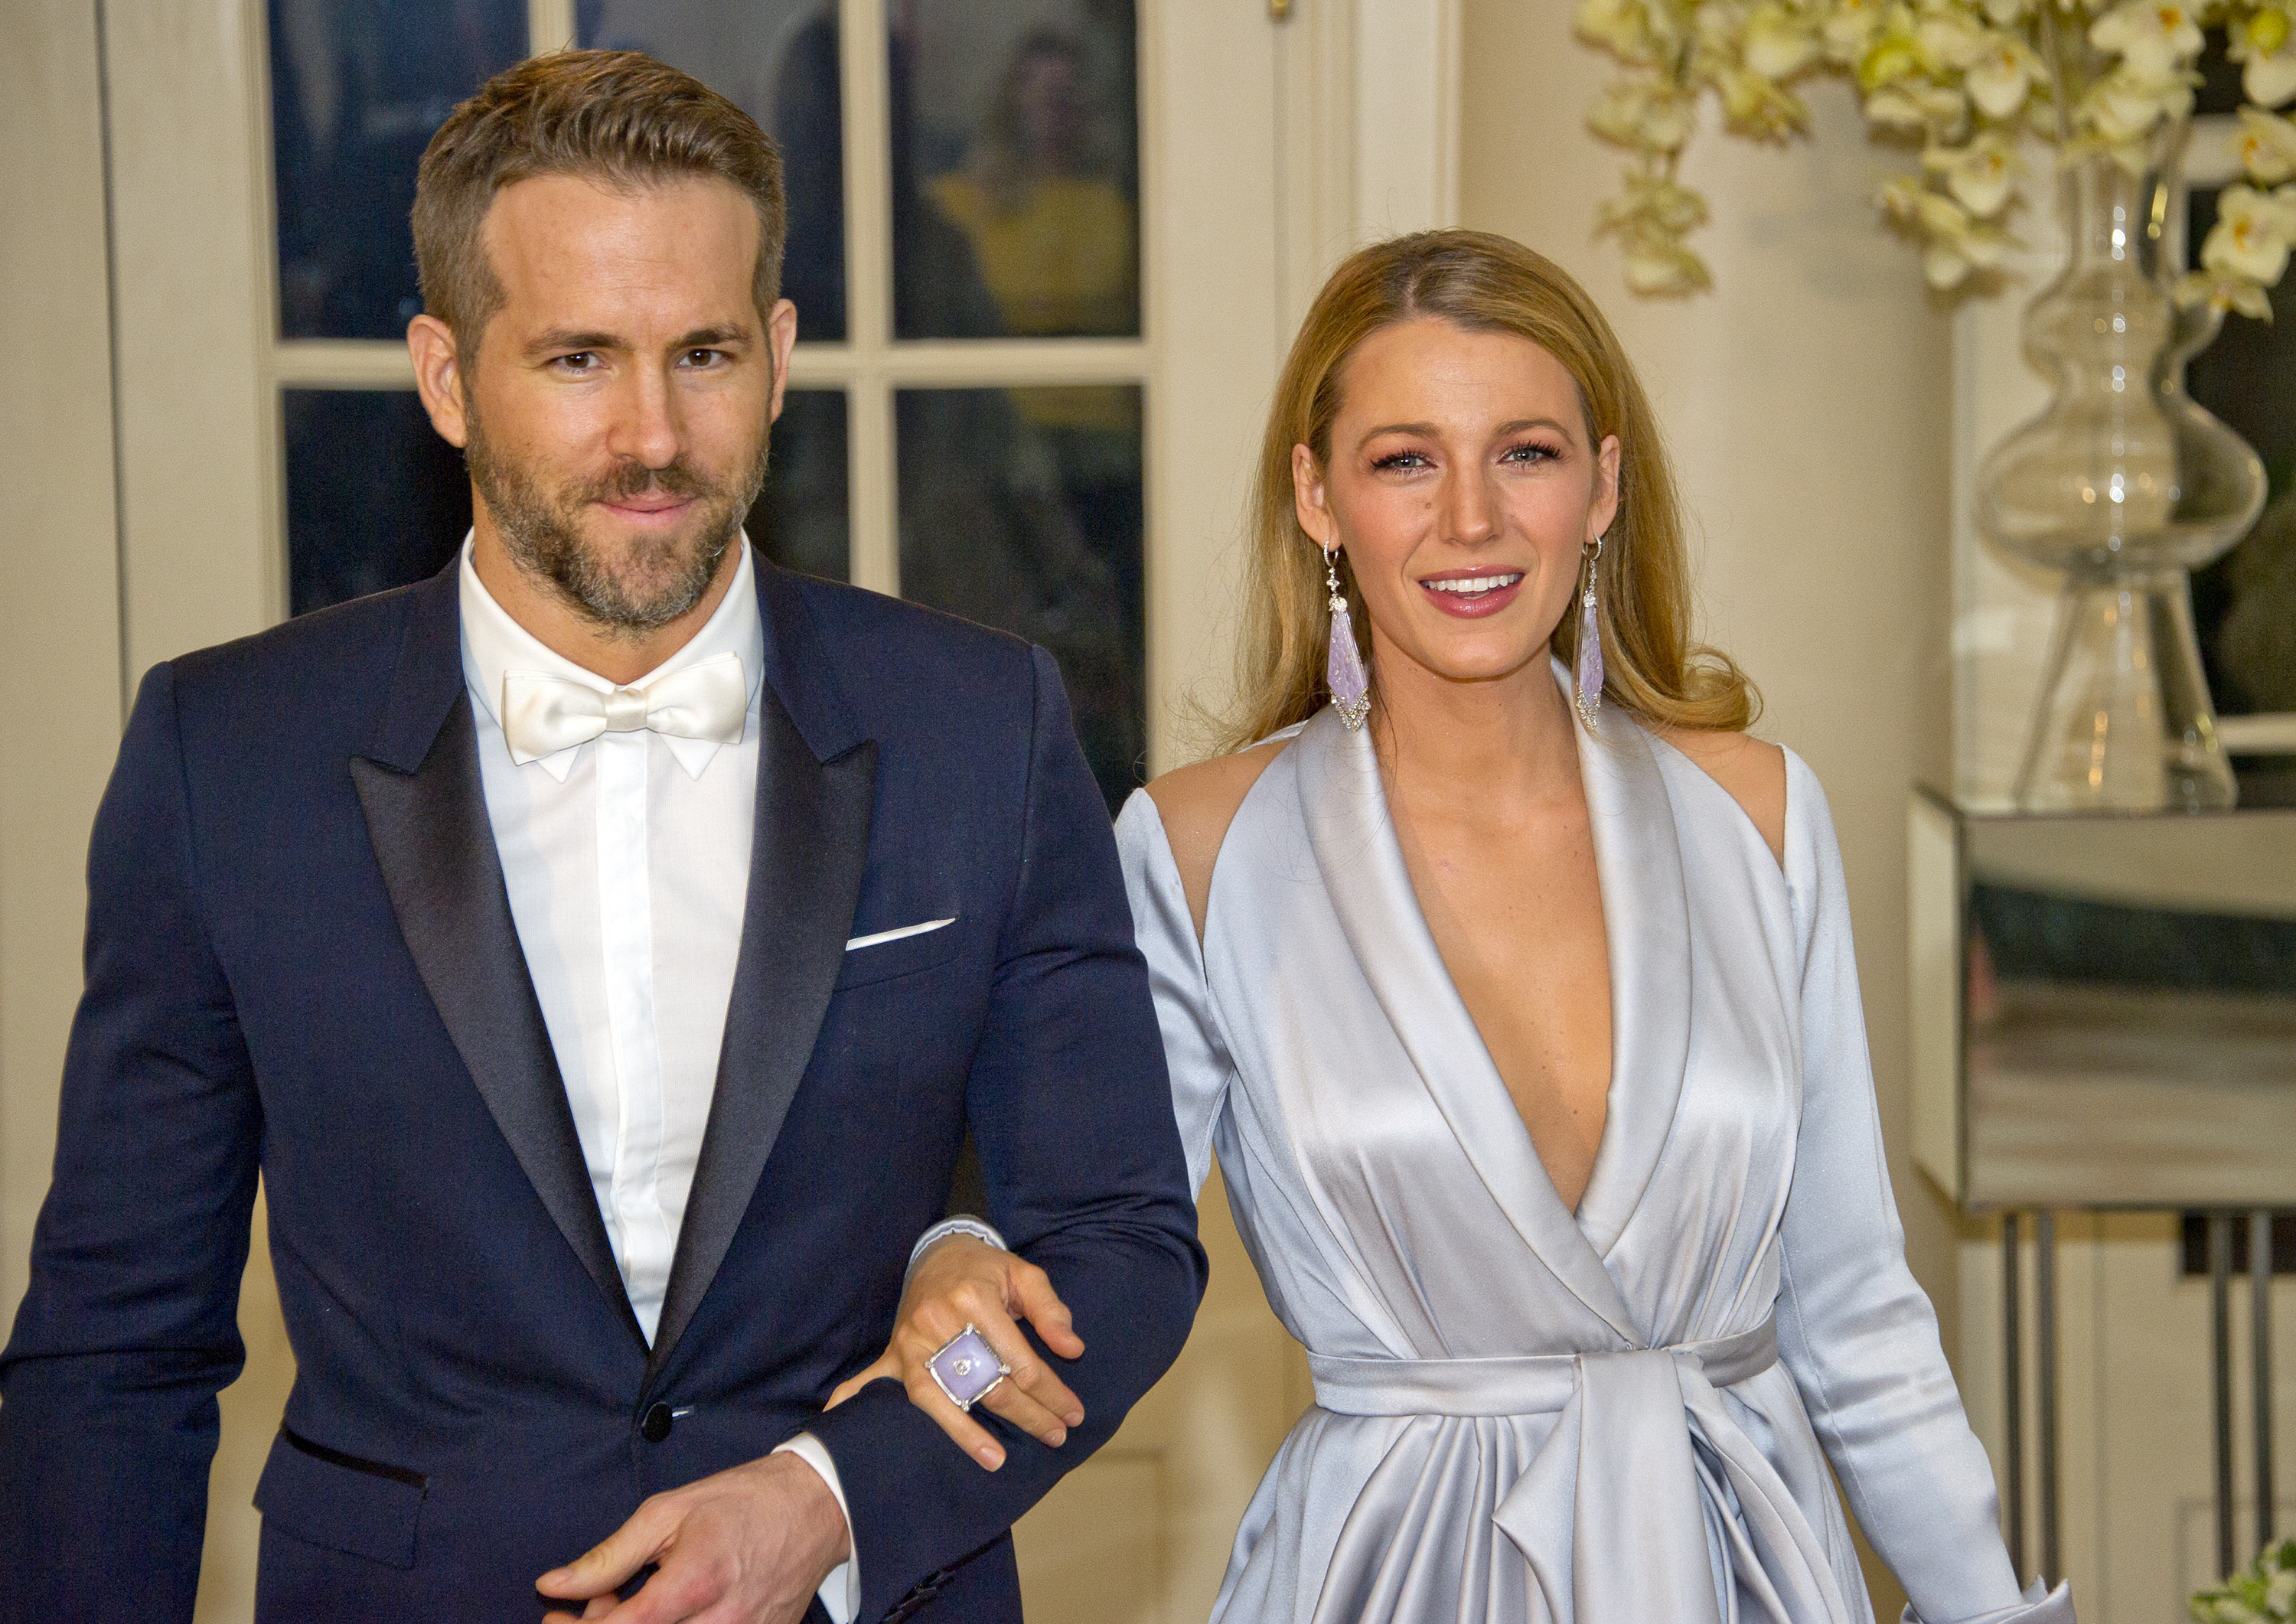 Blake Lively and Ryan Reynolds arrive for the State Dinner in honor of Prime Minister Trudeau and Mrs. Sophie Grégoire Trudeau of Canada at the White House in Washington, DC on Thursday, March 10, 2016.